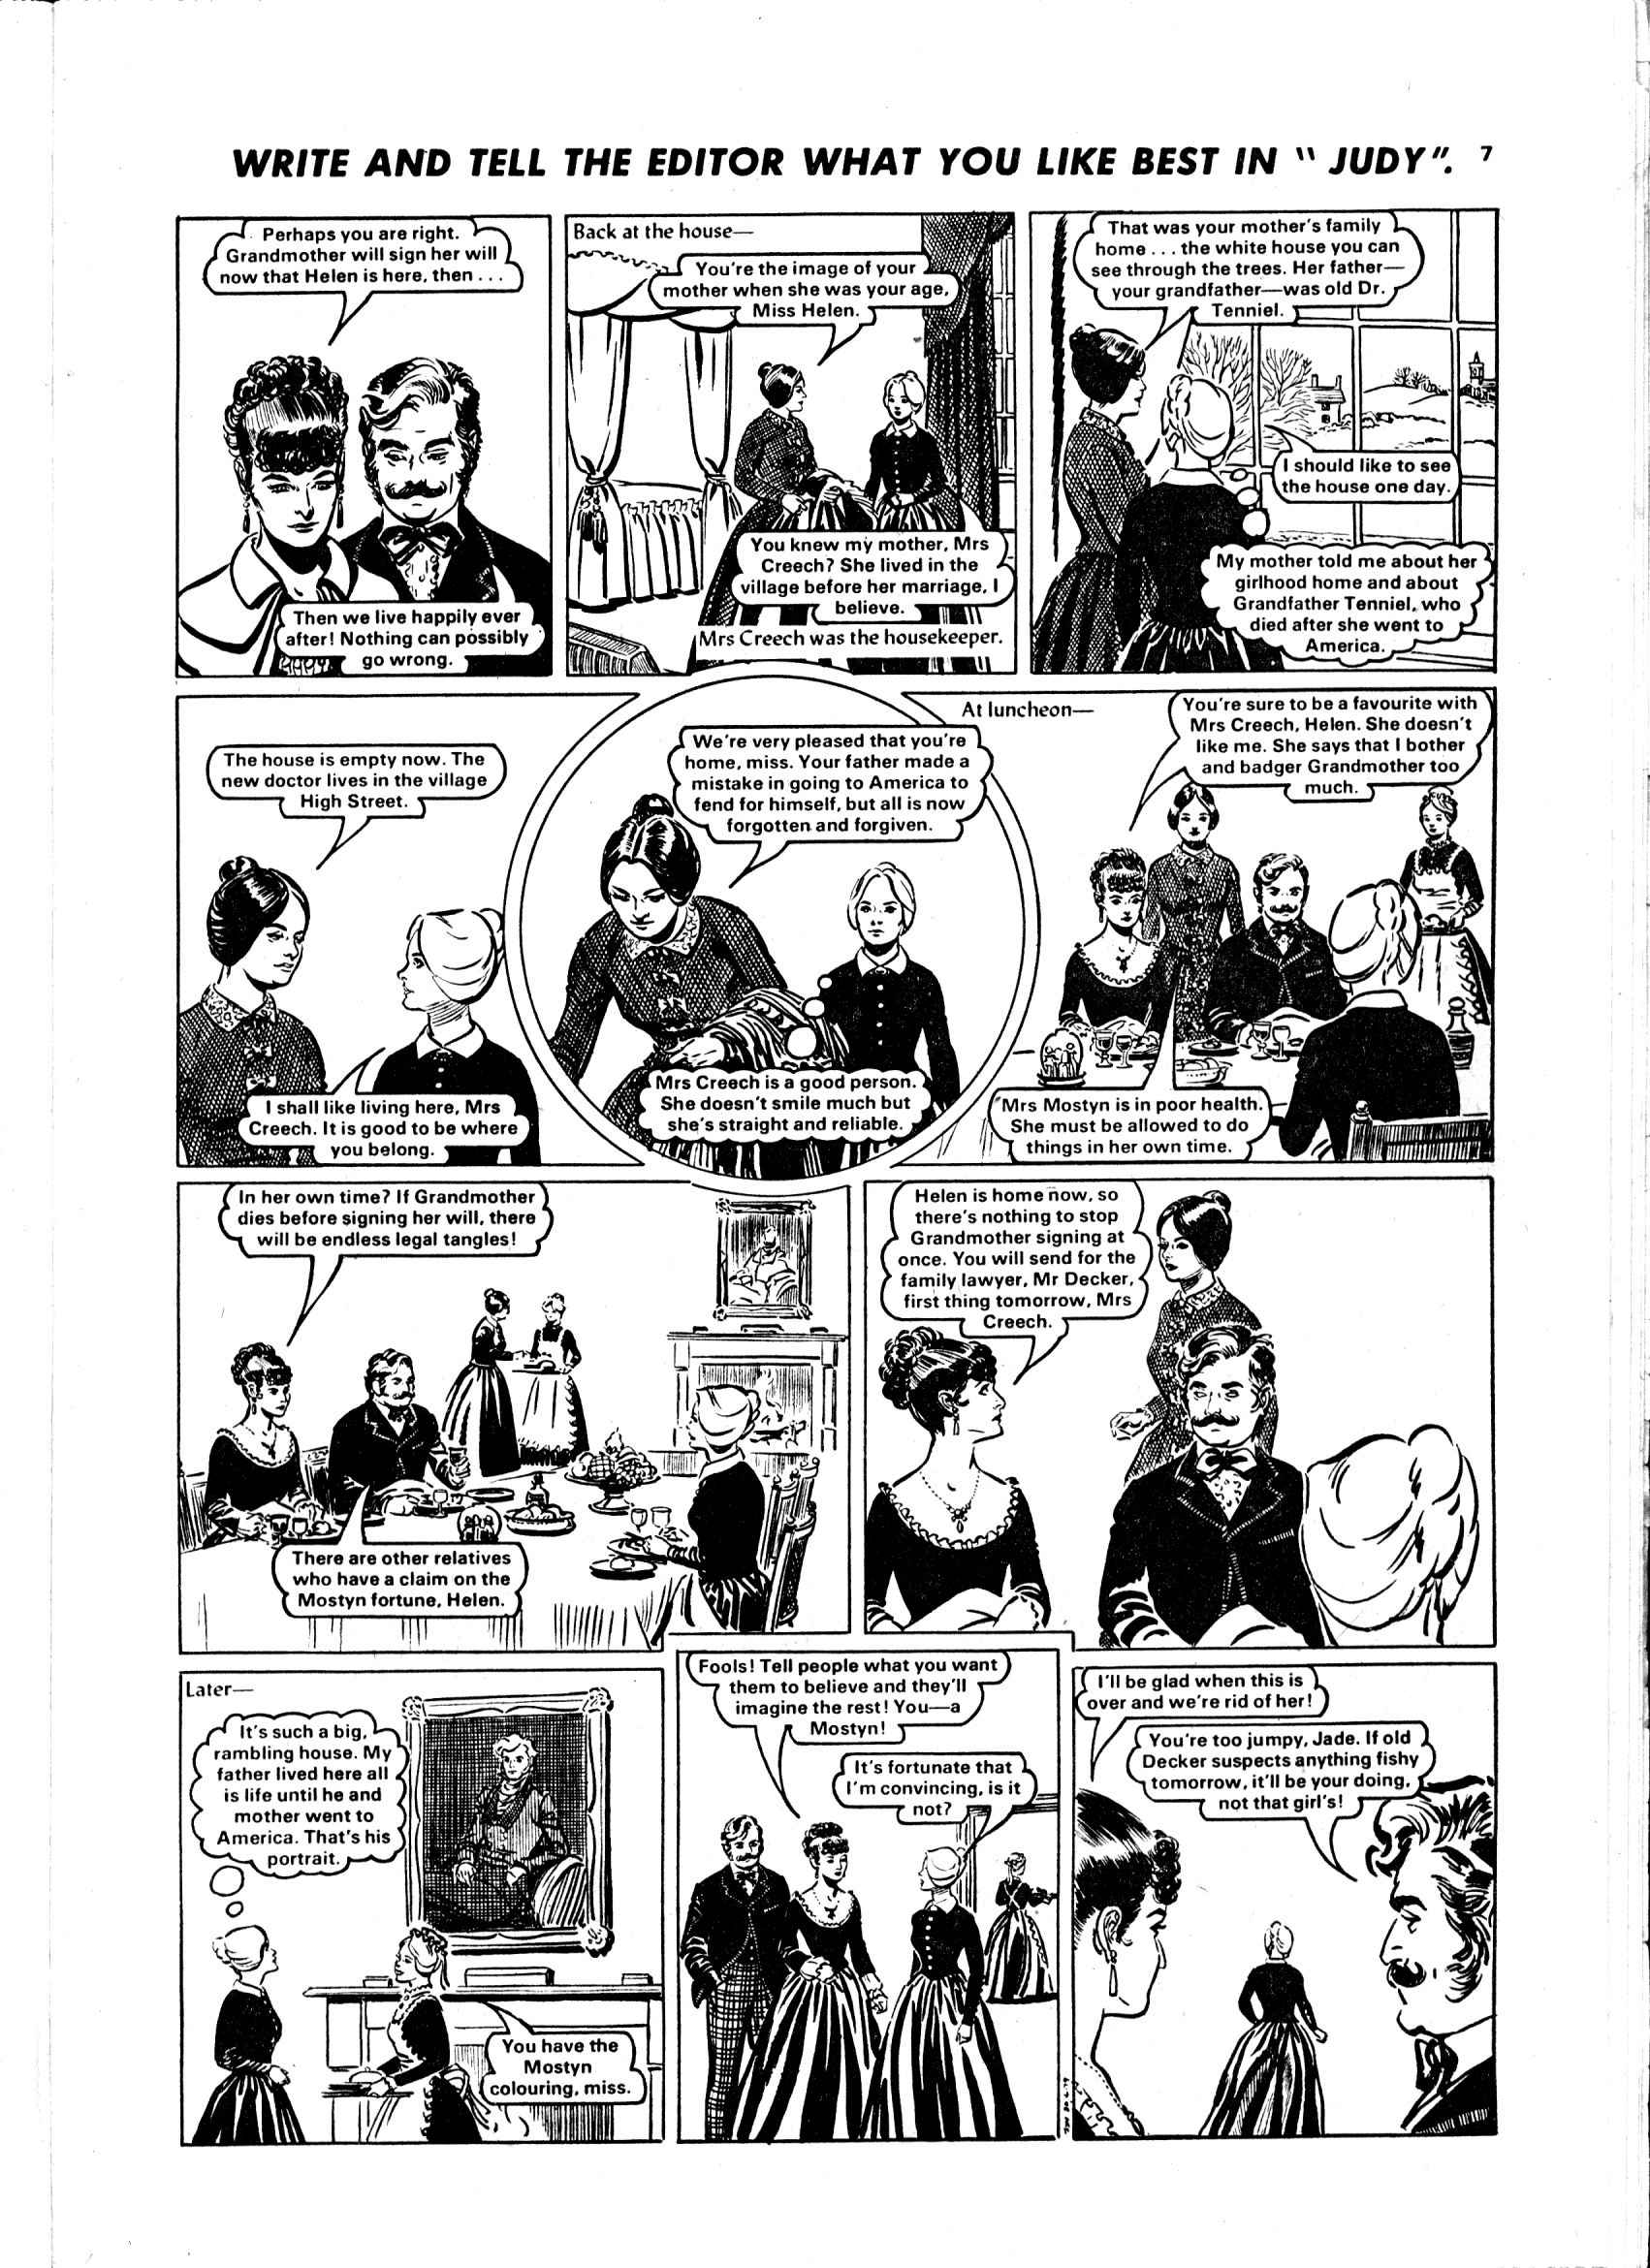 Read online Judy comic -  Issue #16 - 7